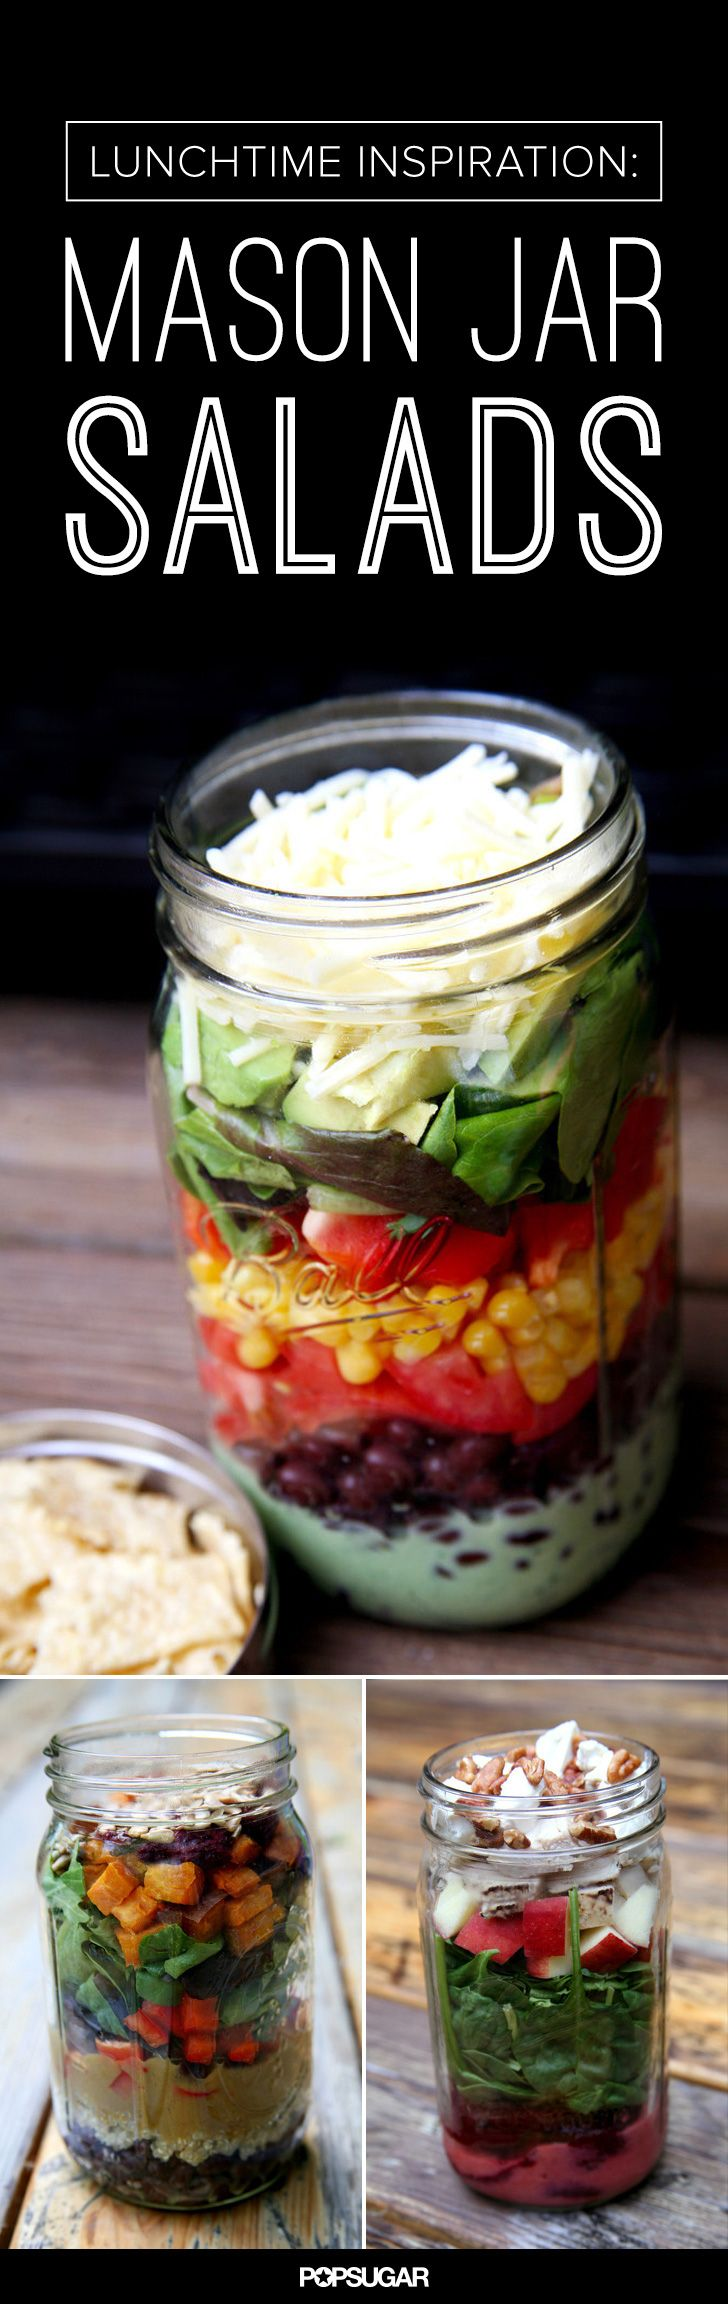 Mason Jar Salad Ideas